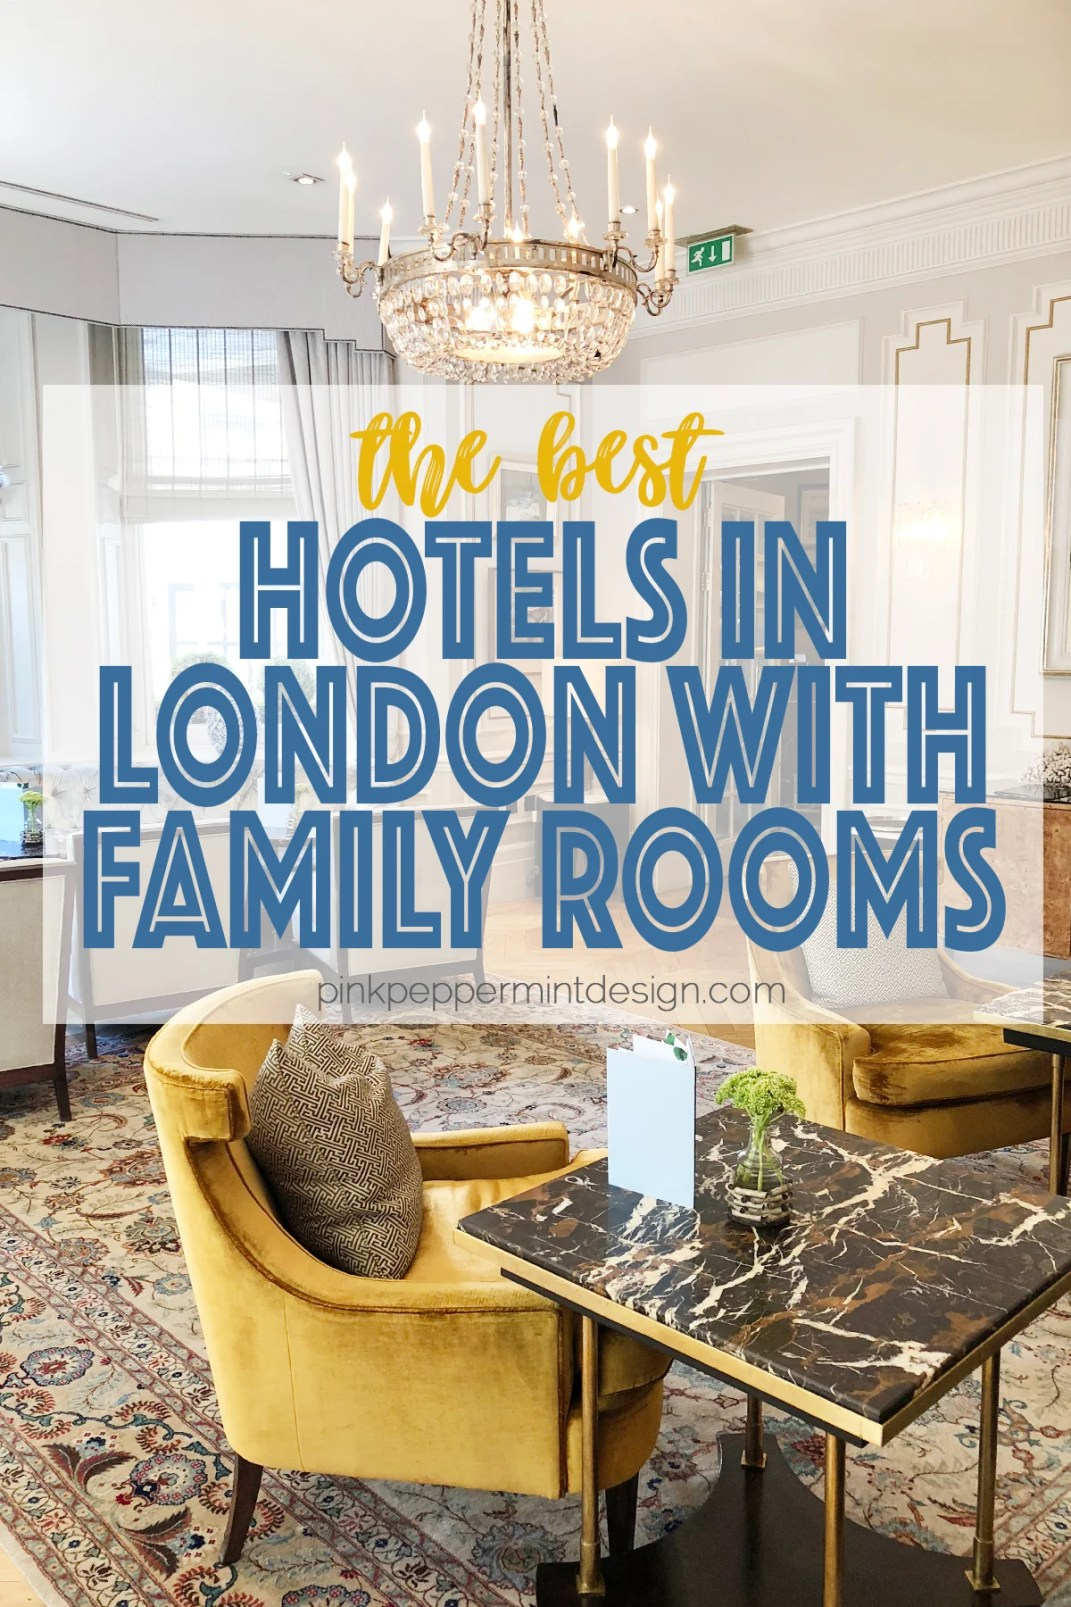 Hotels in london with family rooms 1